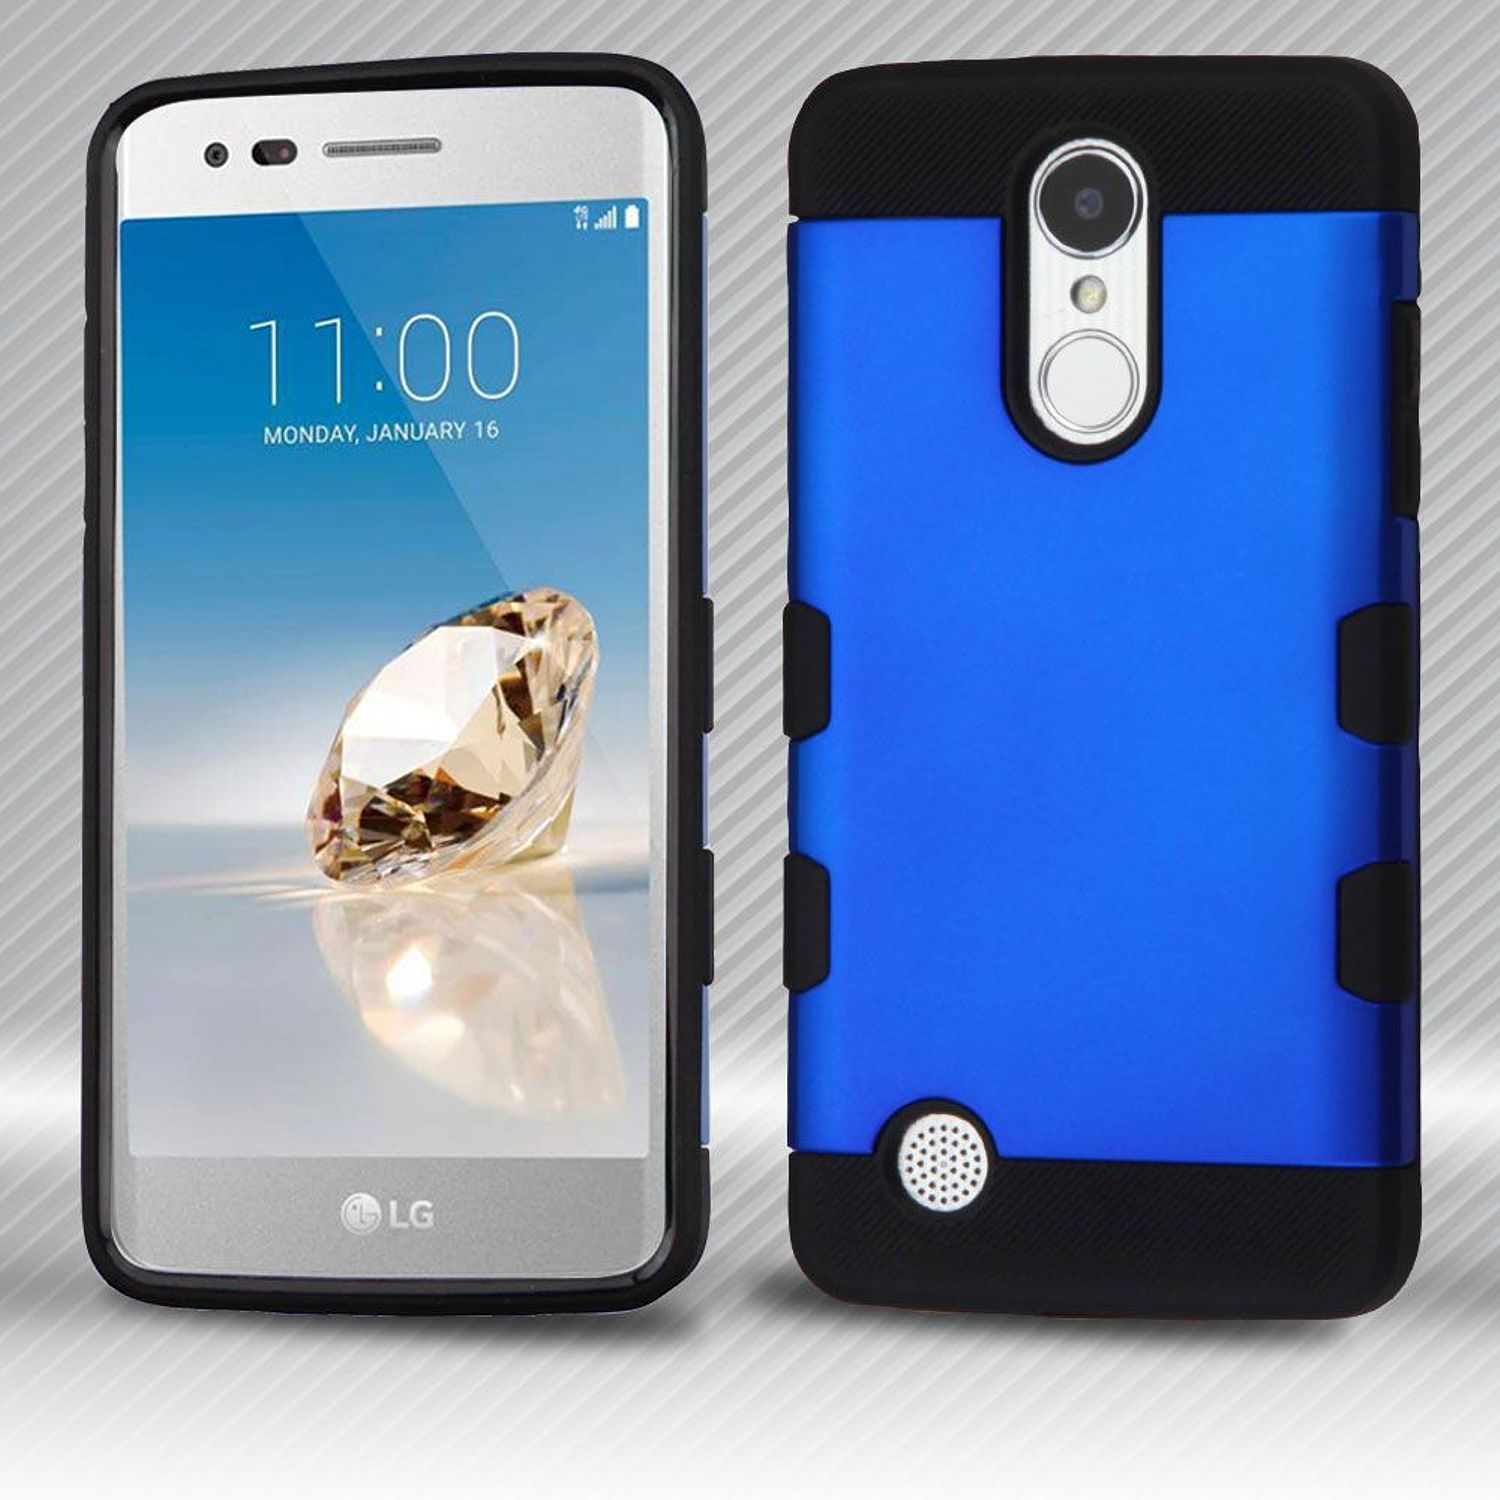 LG Phoenix 3 phone case LG Aristo case LG K8 2017 case by Insten Dual Layer [Shock Absorbing] Hybrid Hard Plastic/Soft TPU Rubber Case Cover For LG Aristo/Fortune/K8 (2017)/LV3/Phoenix 3, Blue/Black